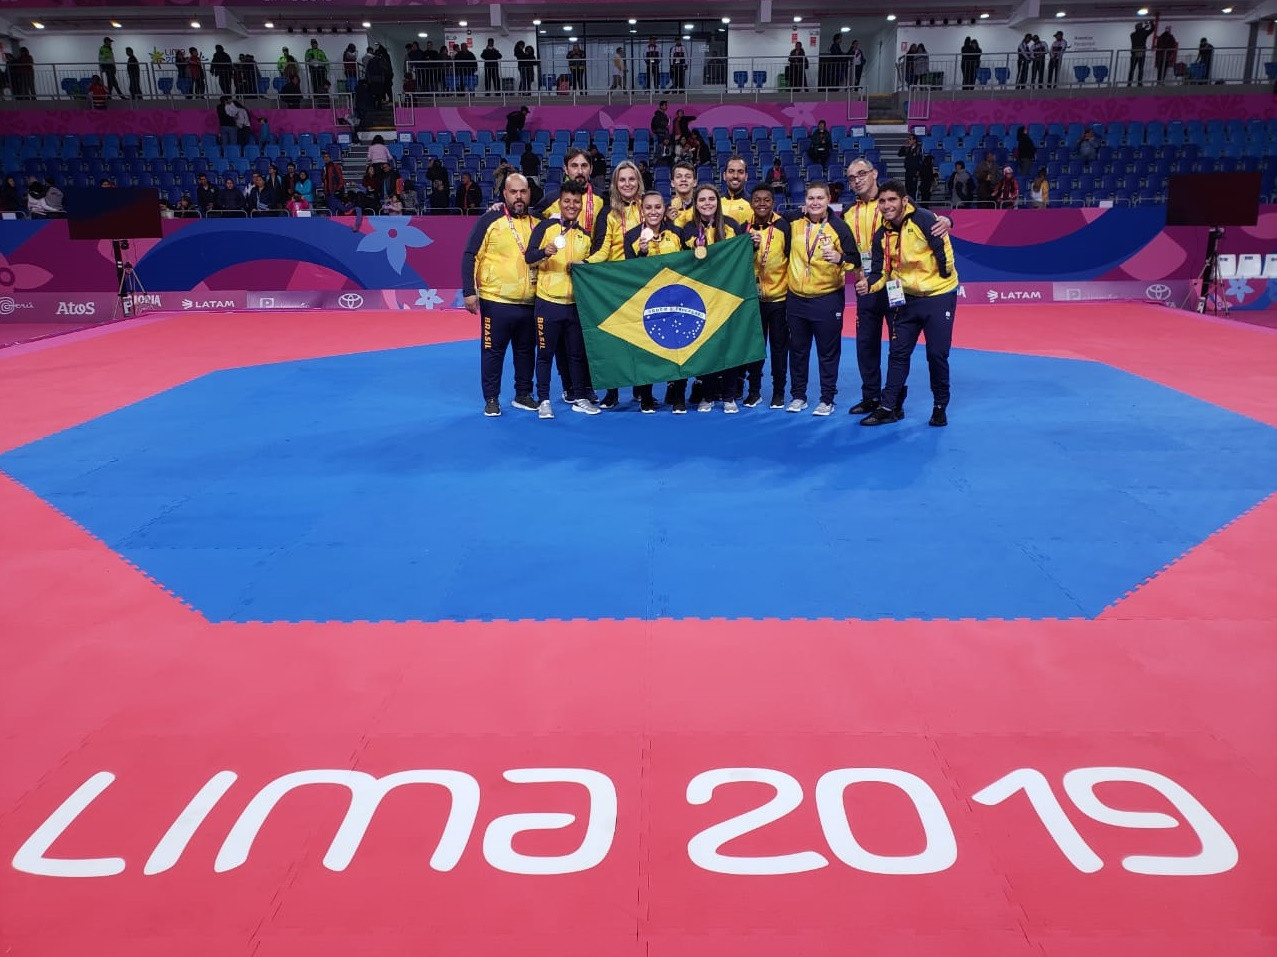 Brazil enjoyed a successful 2019 Parapan American Games taekwondo tournament in Lima with two gold medals  ©CBTKD